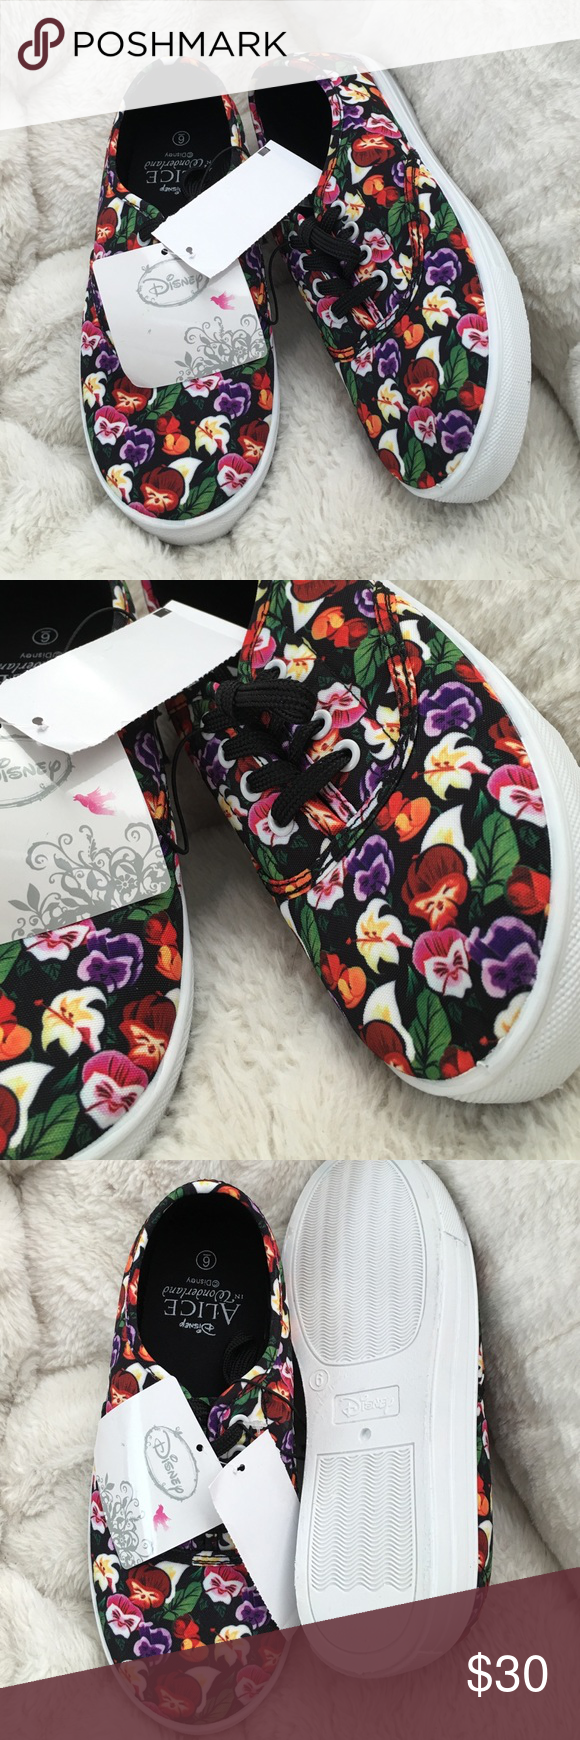 alice in wonderland sneakers the flowers from the movie design on the shoes. im normally a 6.5 and these fit just right for a size 6. Disney Shoes Sneakers